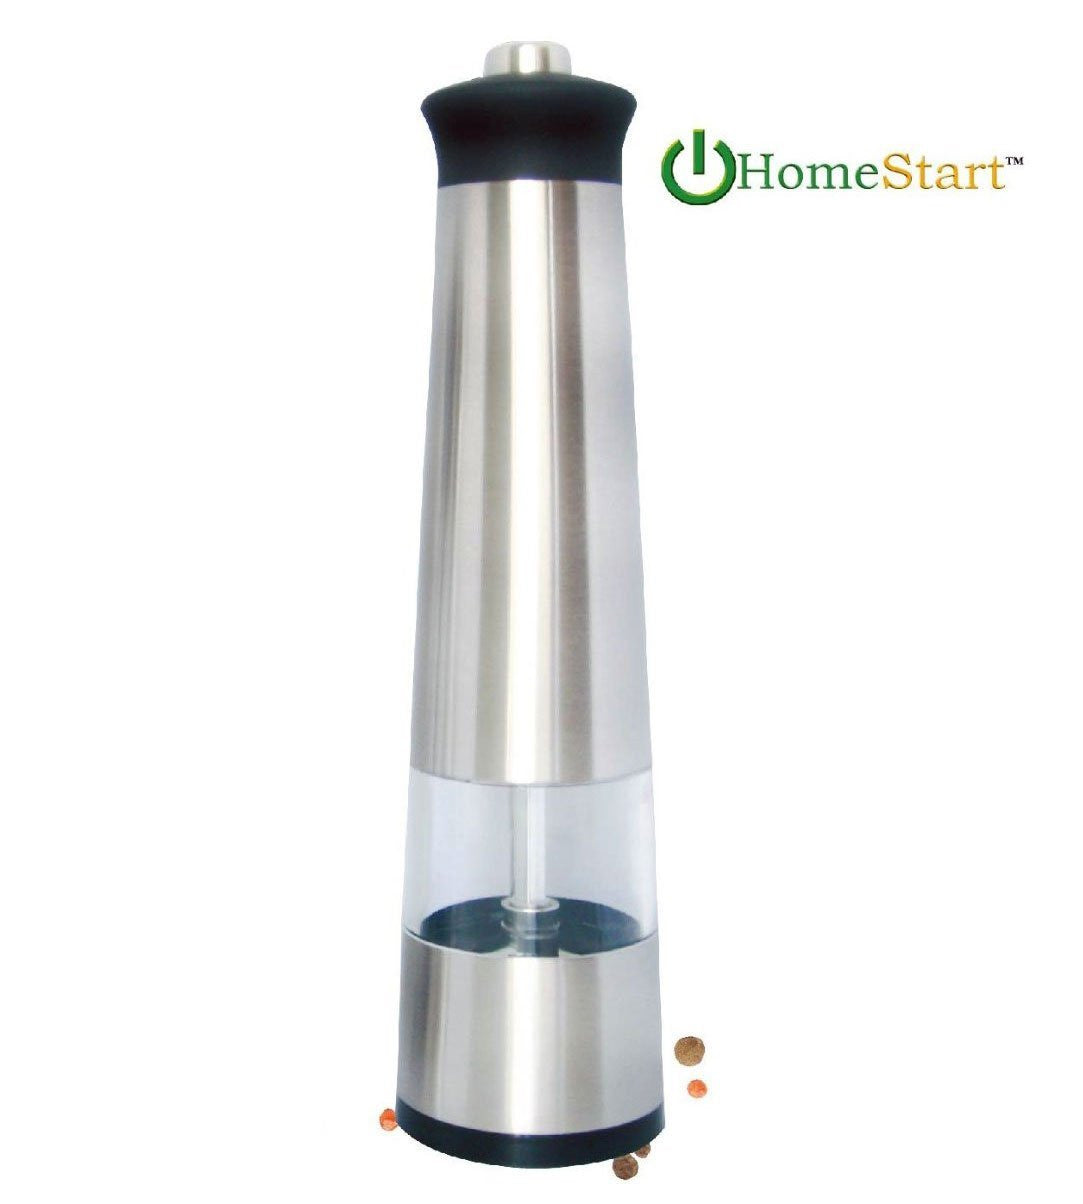 HomeStart Electric Salt & Pepper Grinder with LED Light